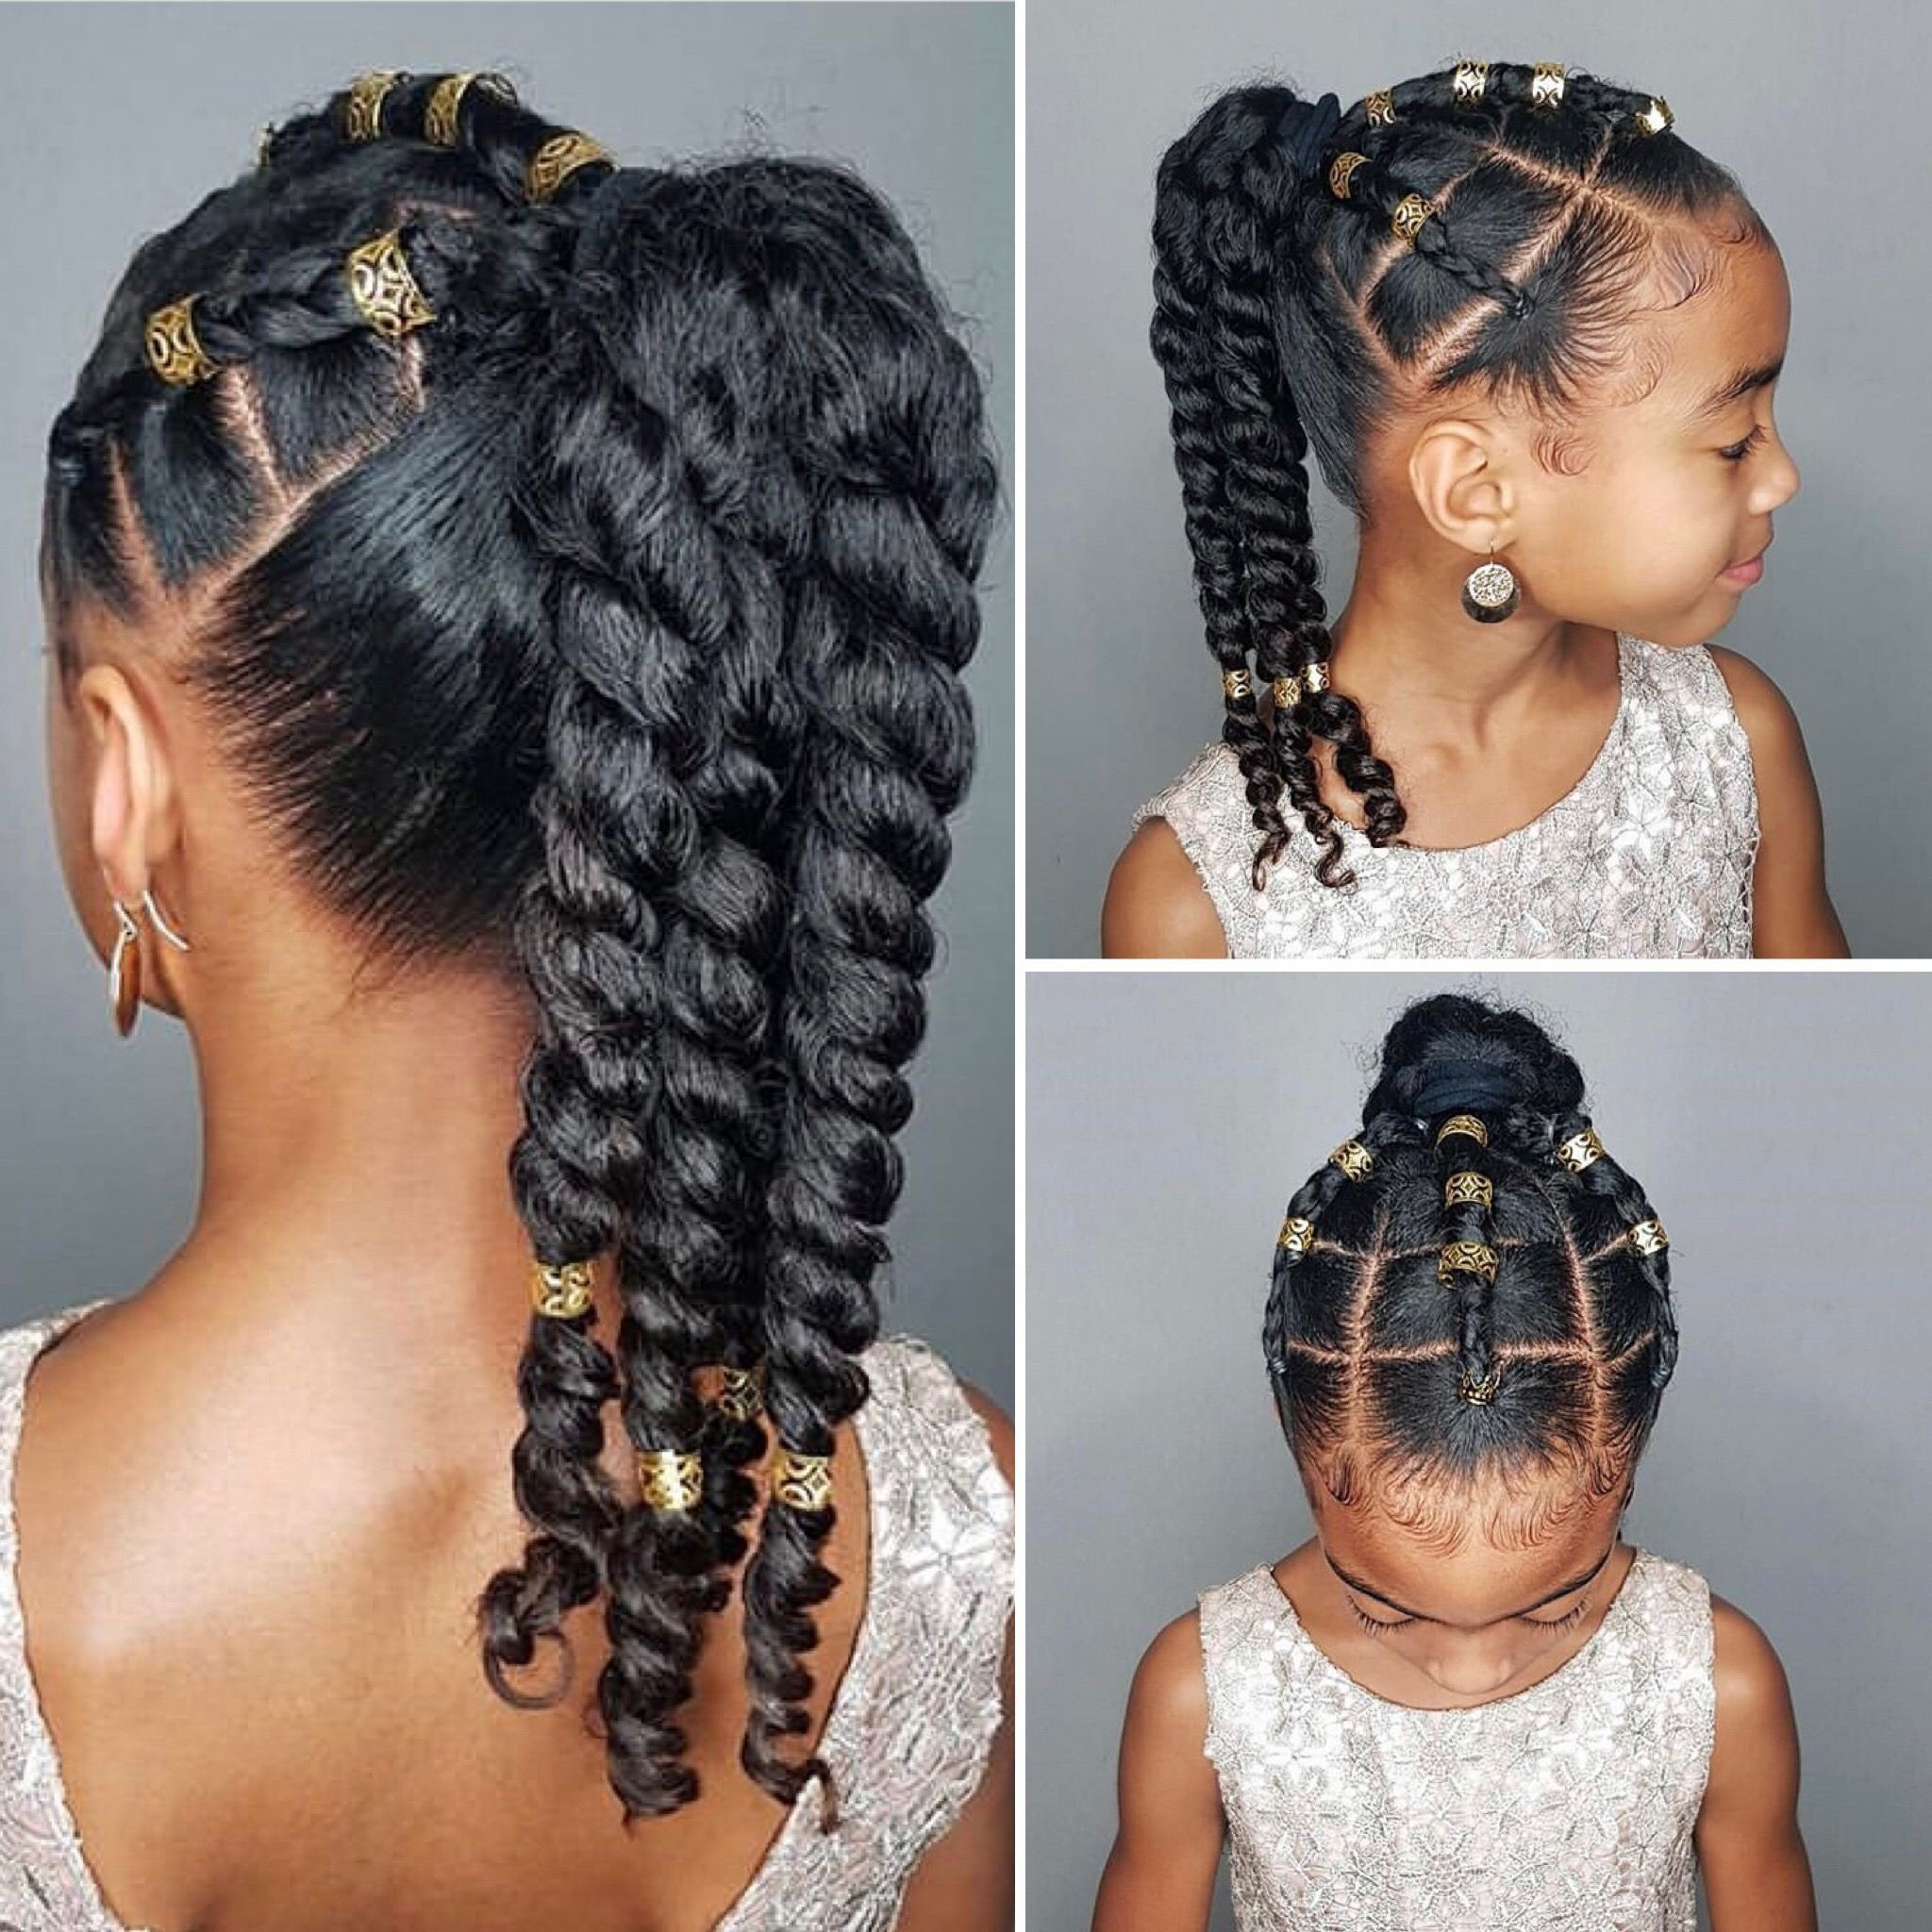 Cute Hairstyles For 6 Year Olds For Pictures In 2020 Girls Natural Hairstyles Kids Braided Hairstyles Natural Hairstyles For Kids